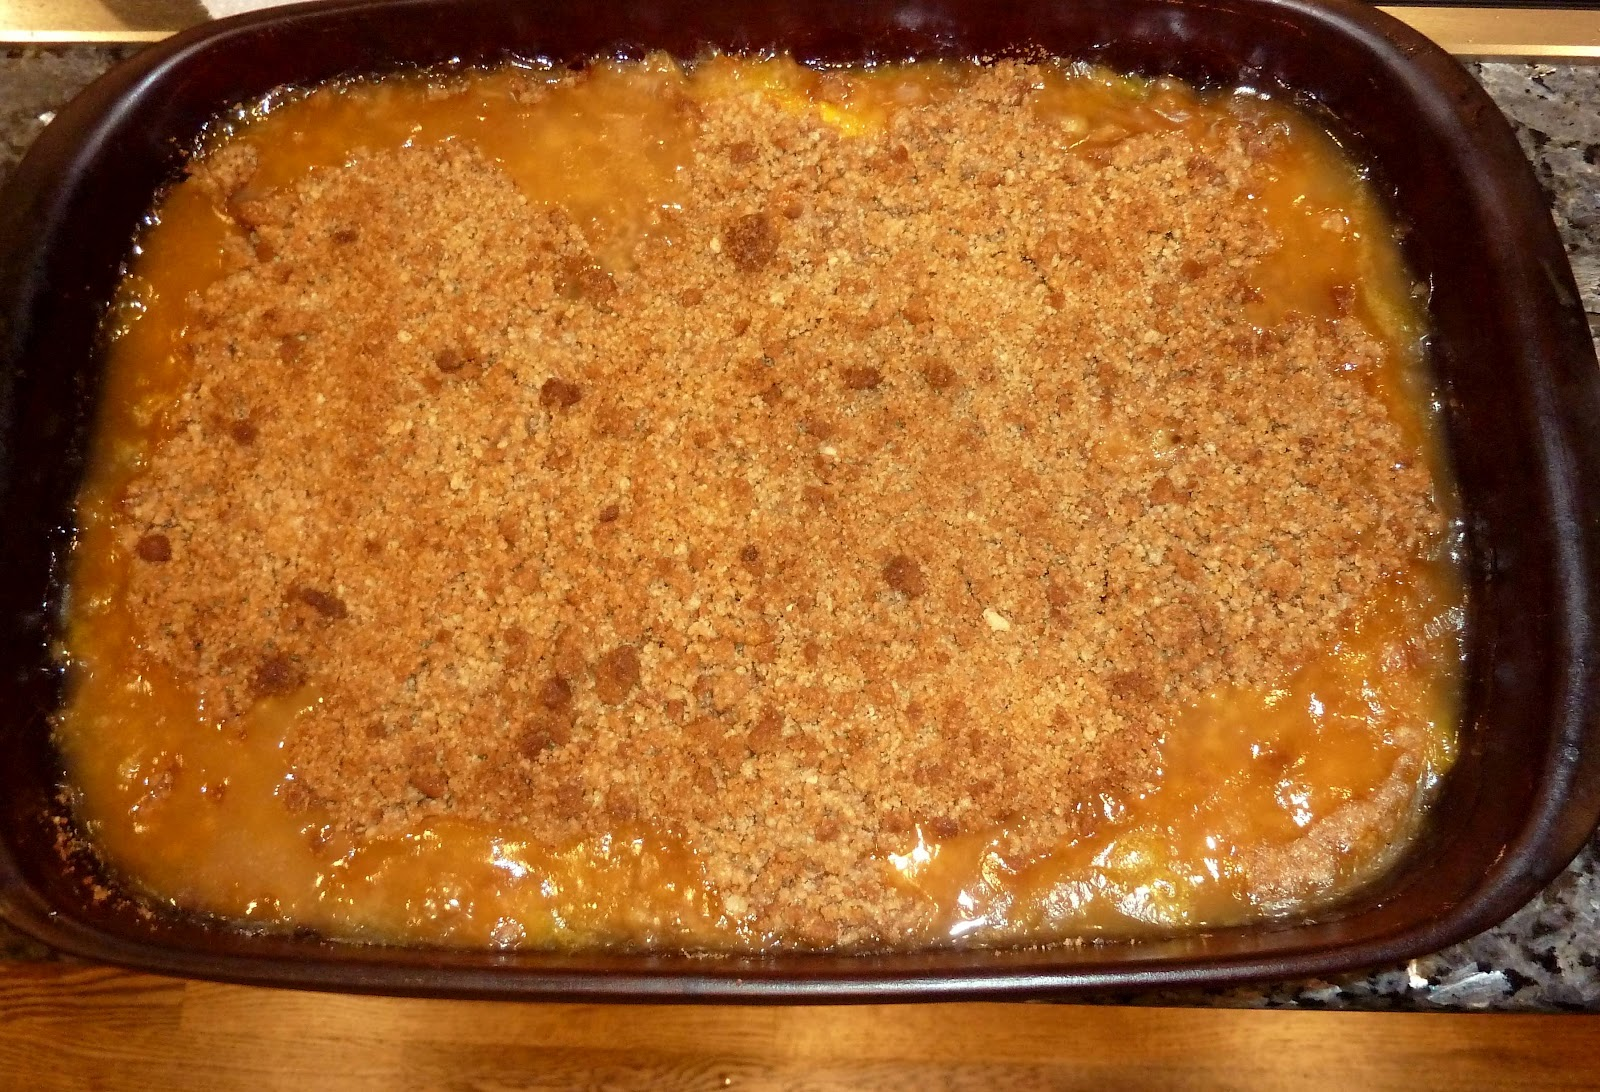 Dinner with Denise: Peach Crisp with Ginger Snap Topping